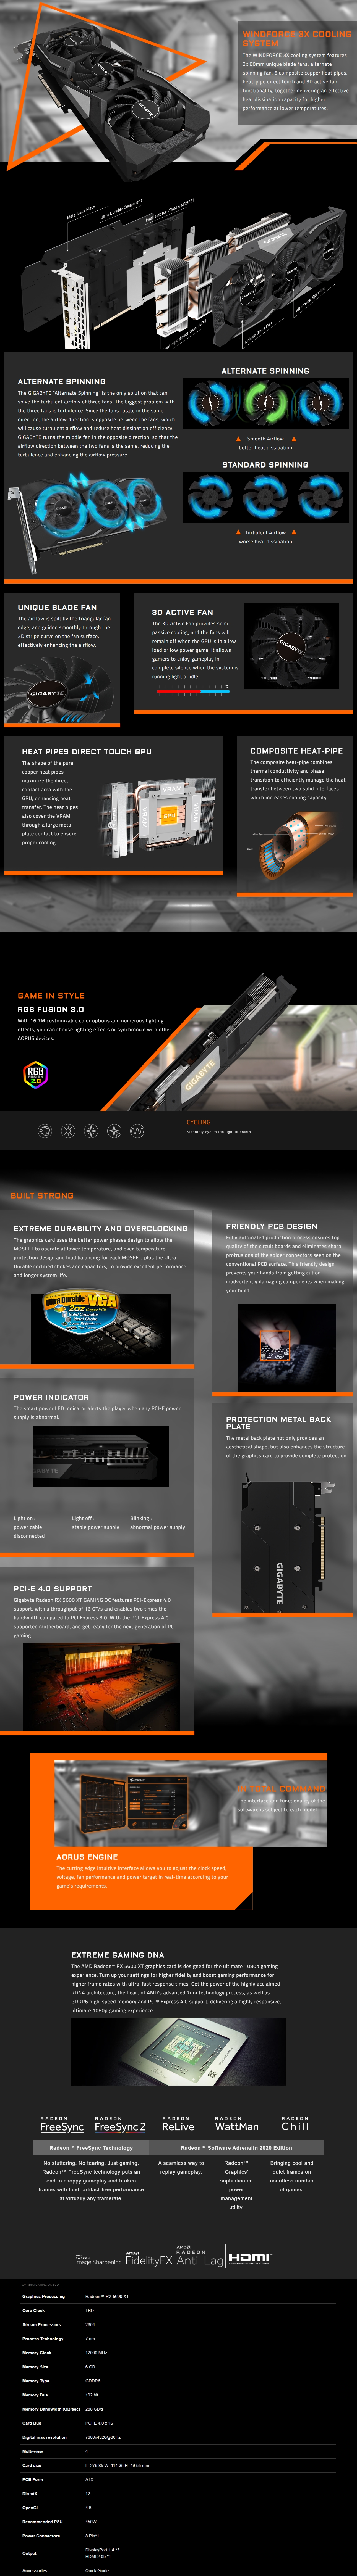 A large marketing image providing additional information about the product Gigabyte Radeon RX 5600 XT Gaming OC 6GB GDDR6 - Additional alt info not provided